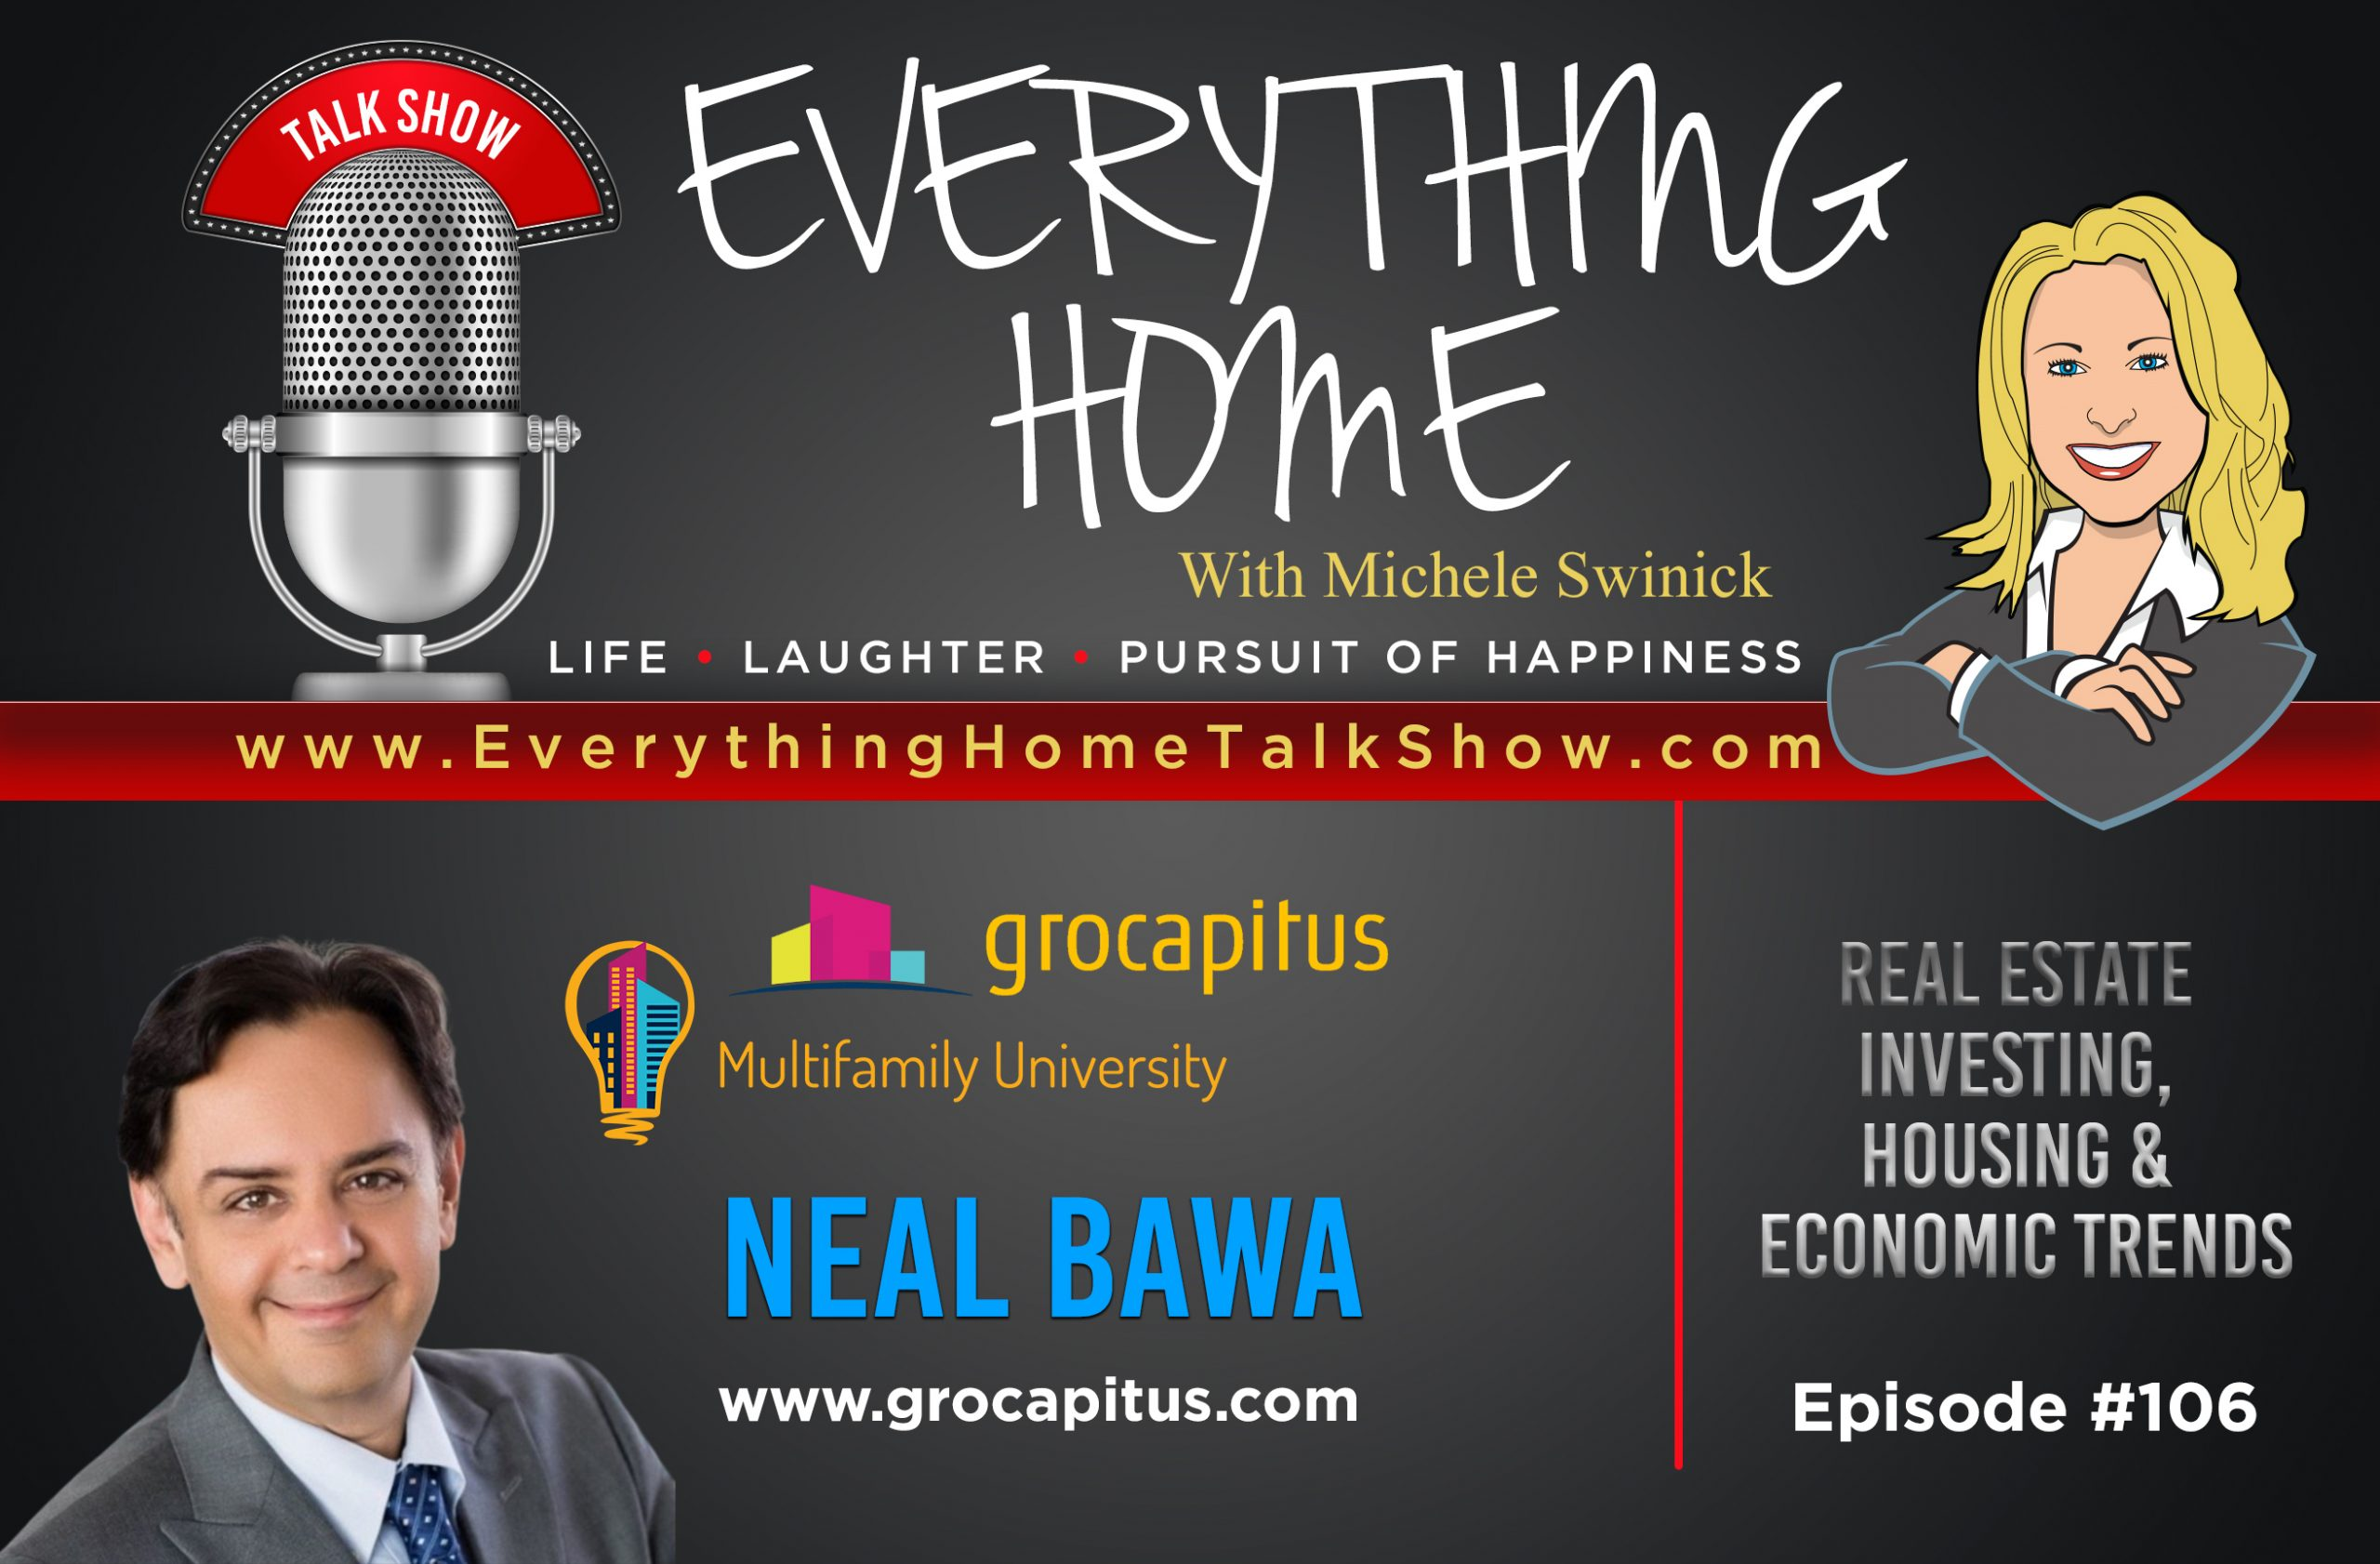 #106 - Economic, Housing & Real Estate Investing Trends